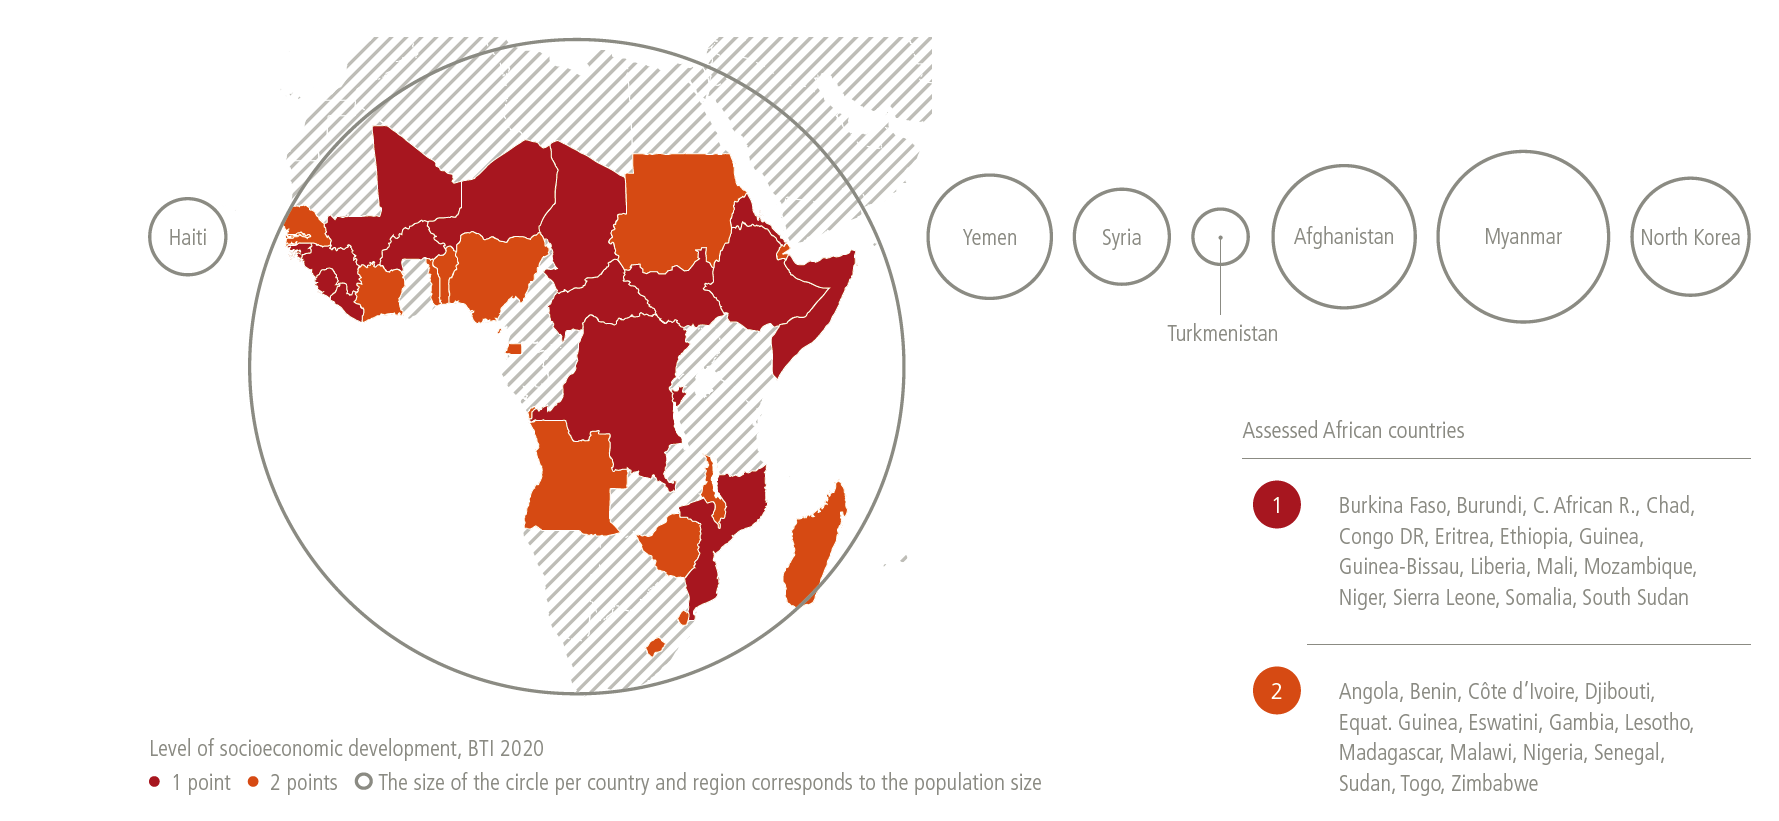 In countries assessed by the BTI, more than 80 percent of the population most affected by social exclusion is African